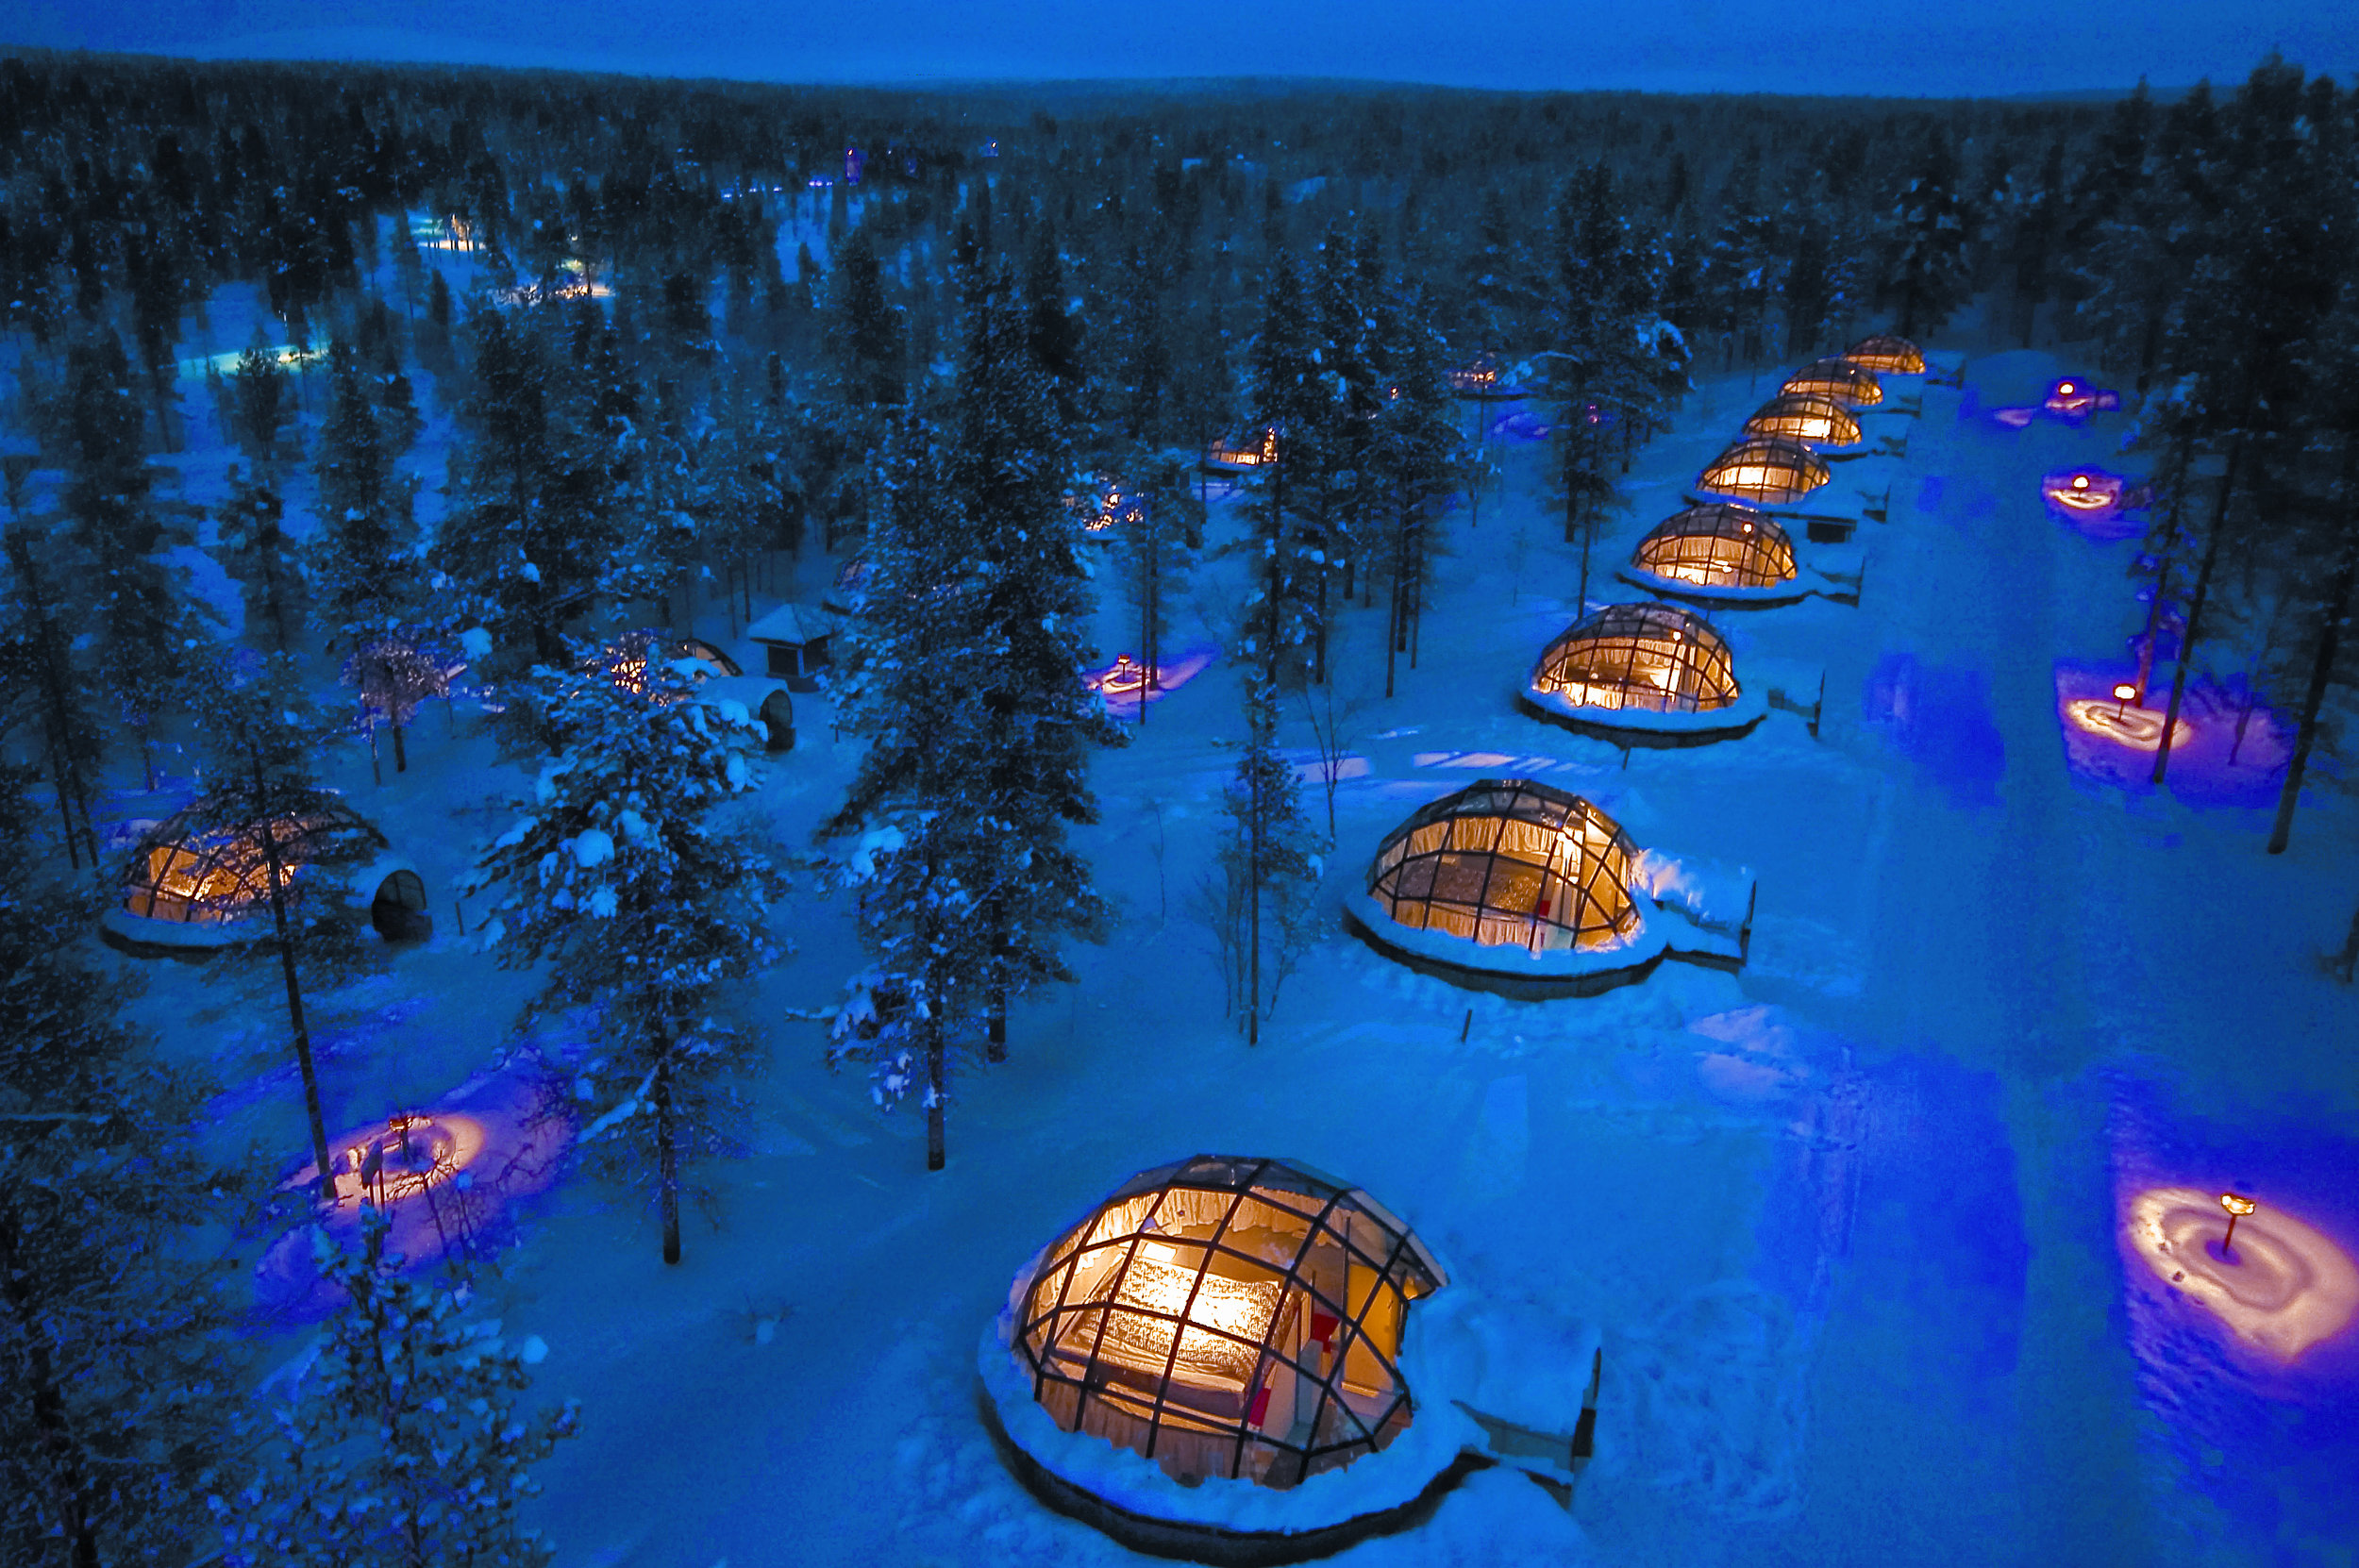 Small glass igloos